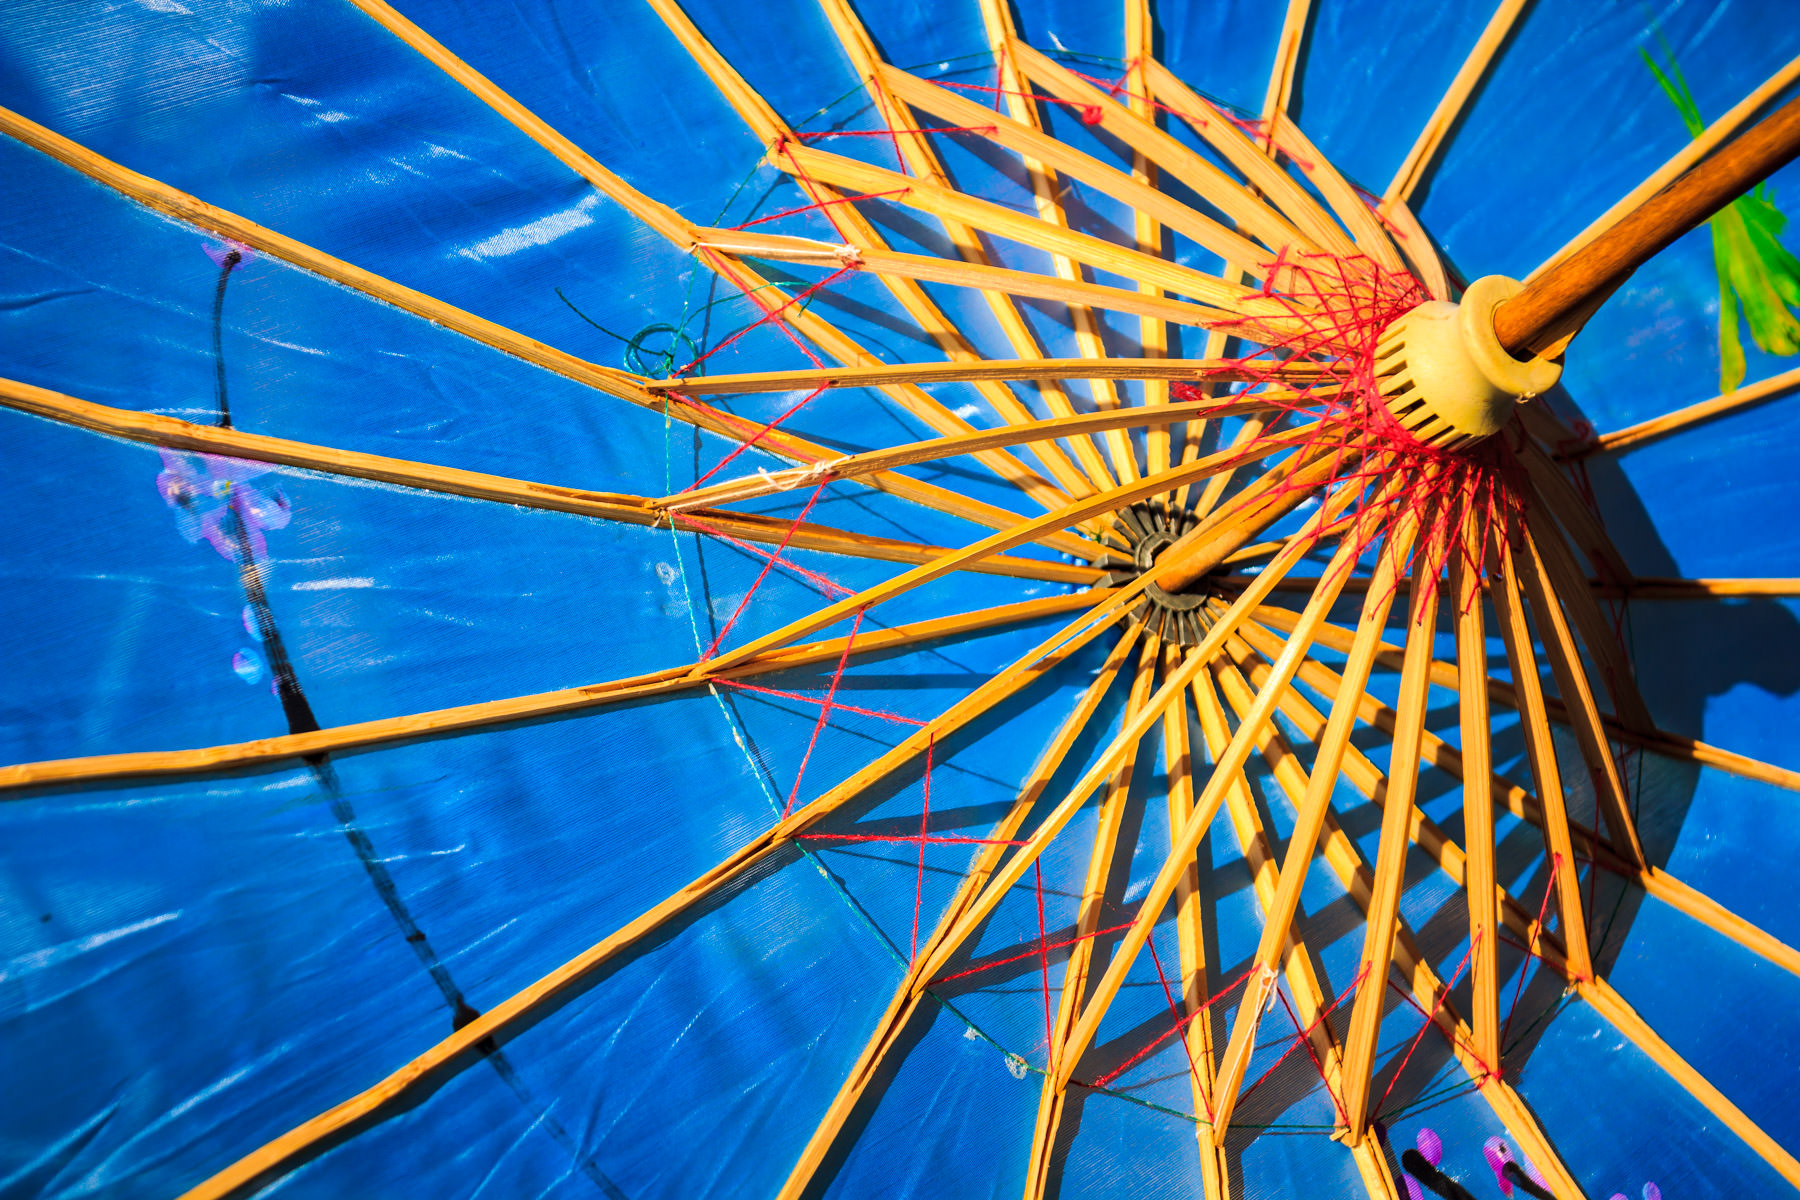 Detail of a Chinese parasol spotted at WorldFest, Addison, Texas.